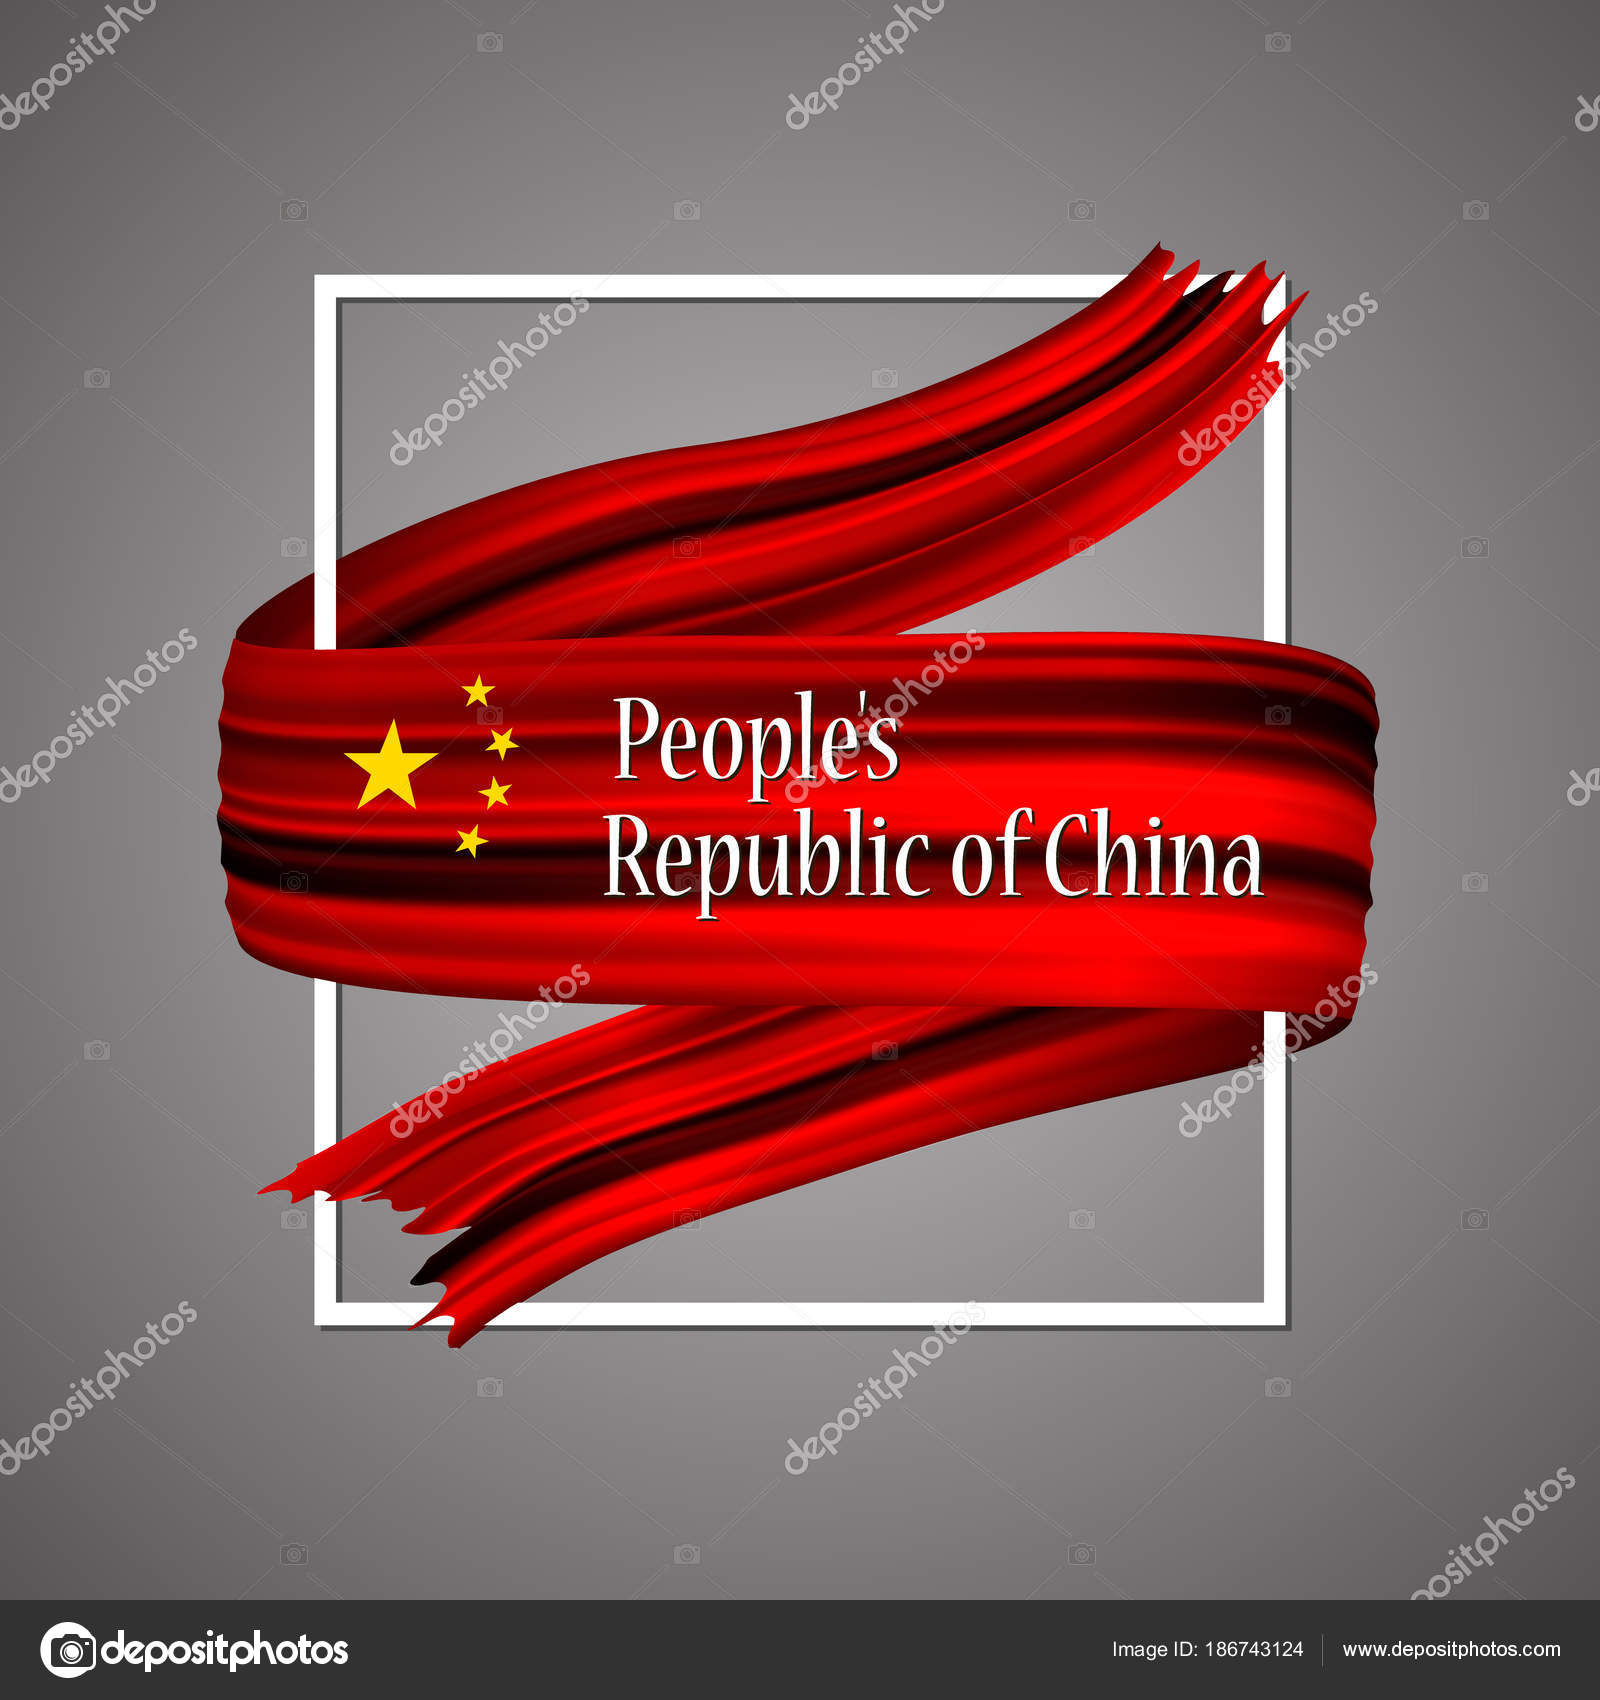 People's Republic of China flag  Official national colors